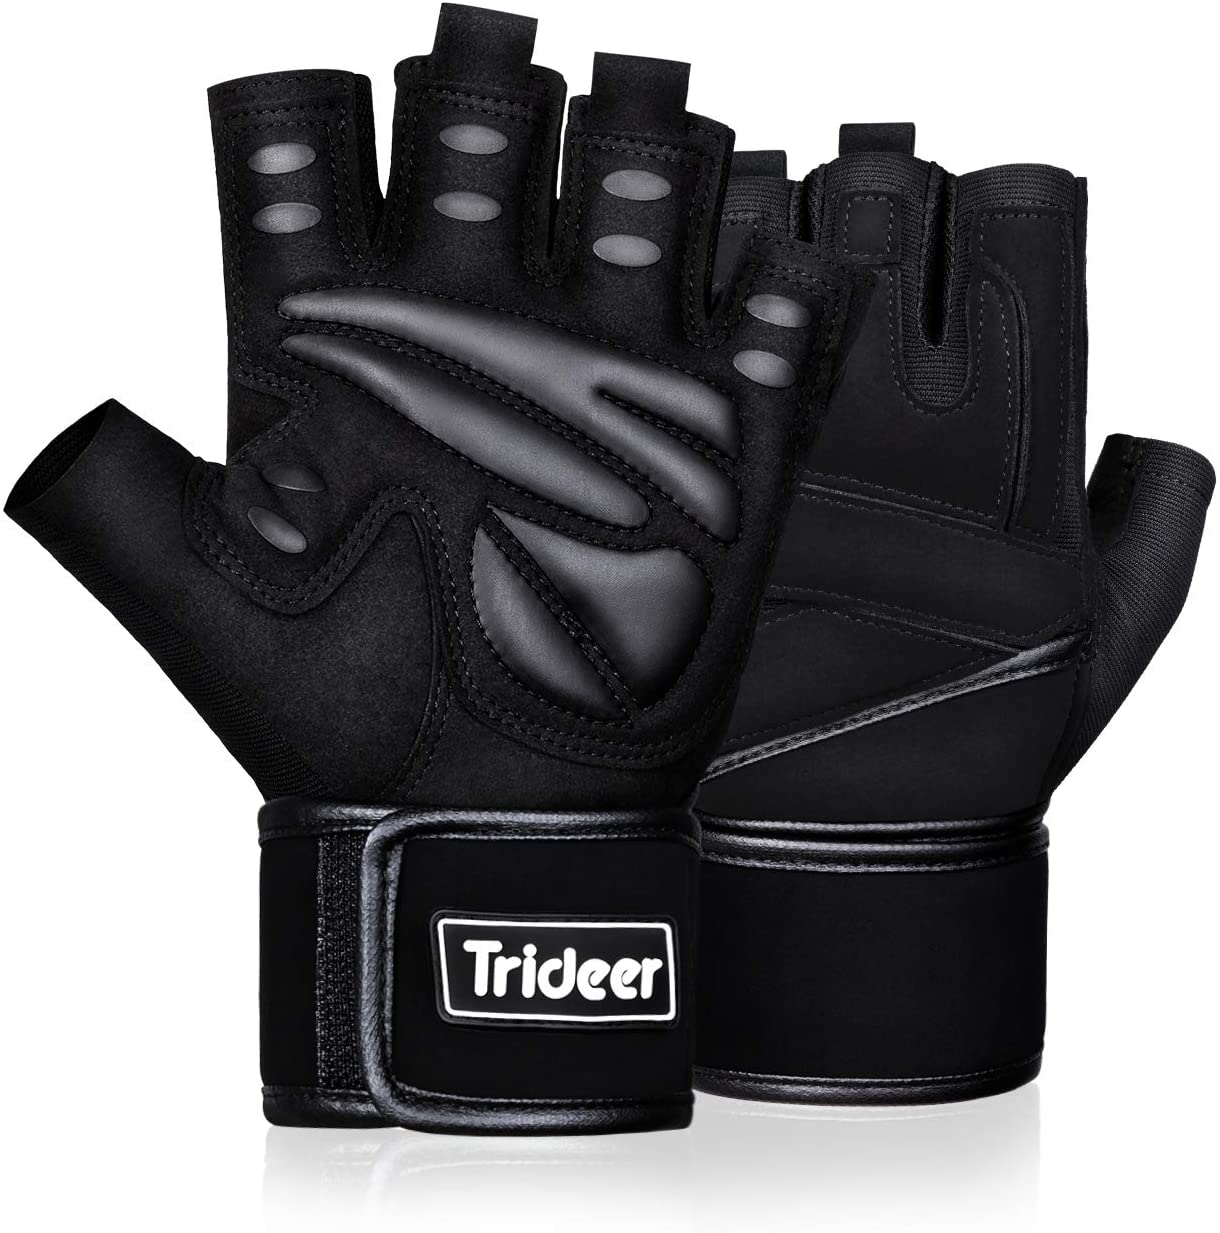 workout gloves trideer